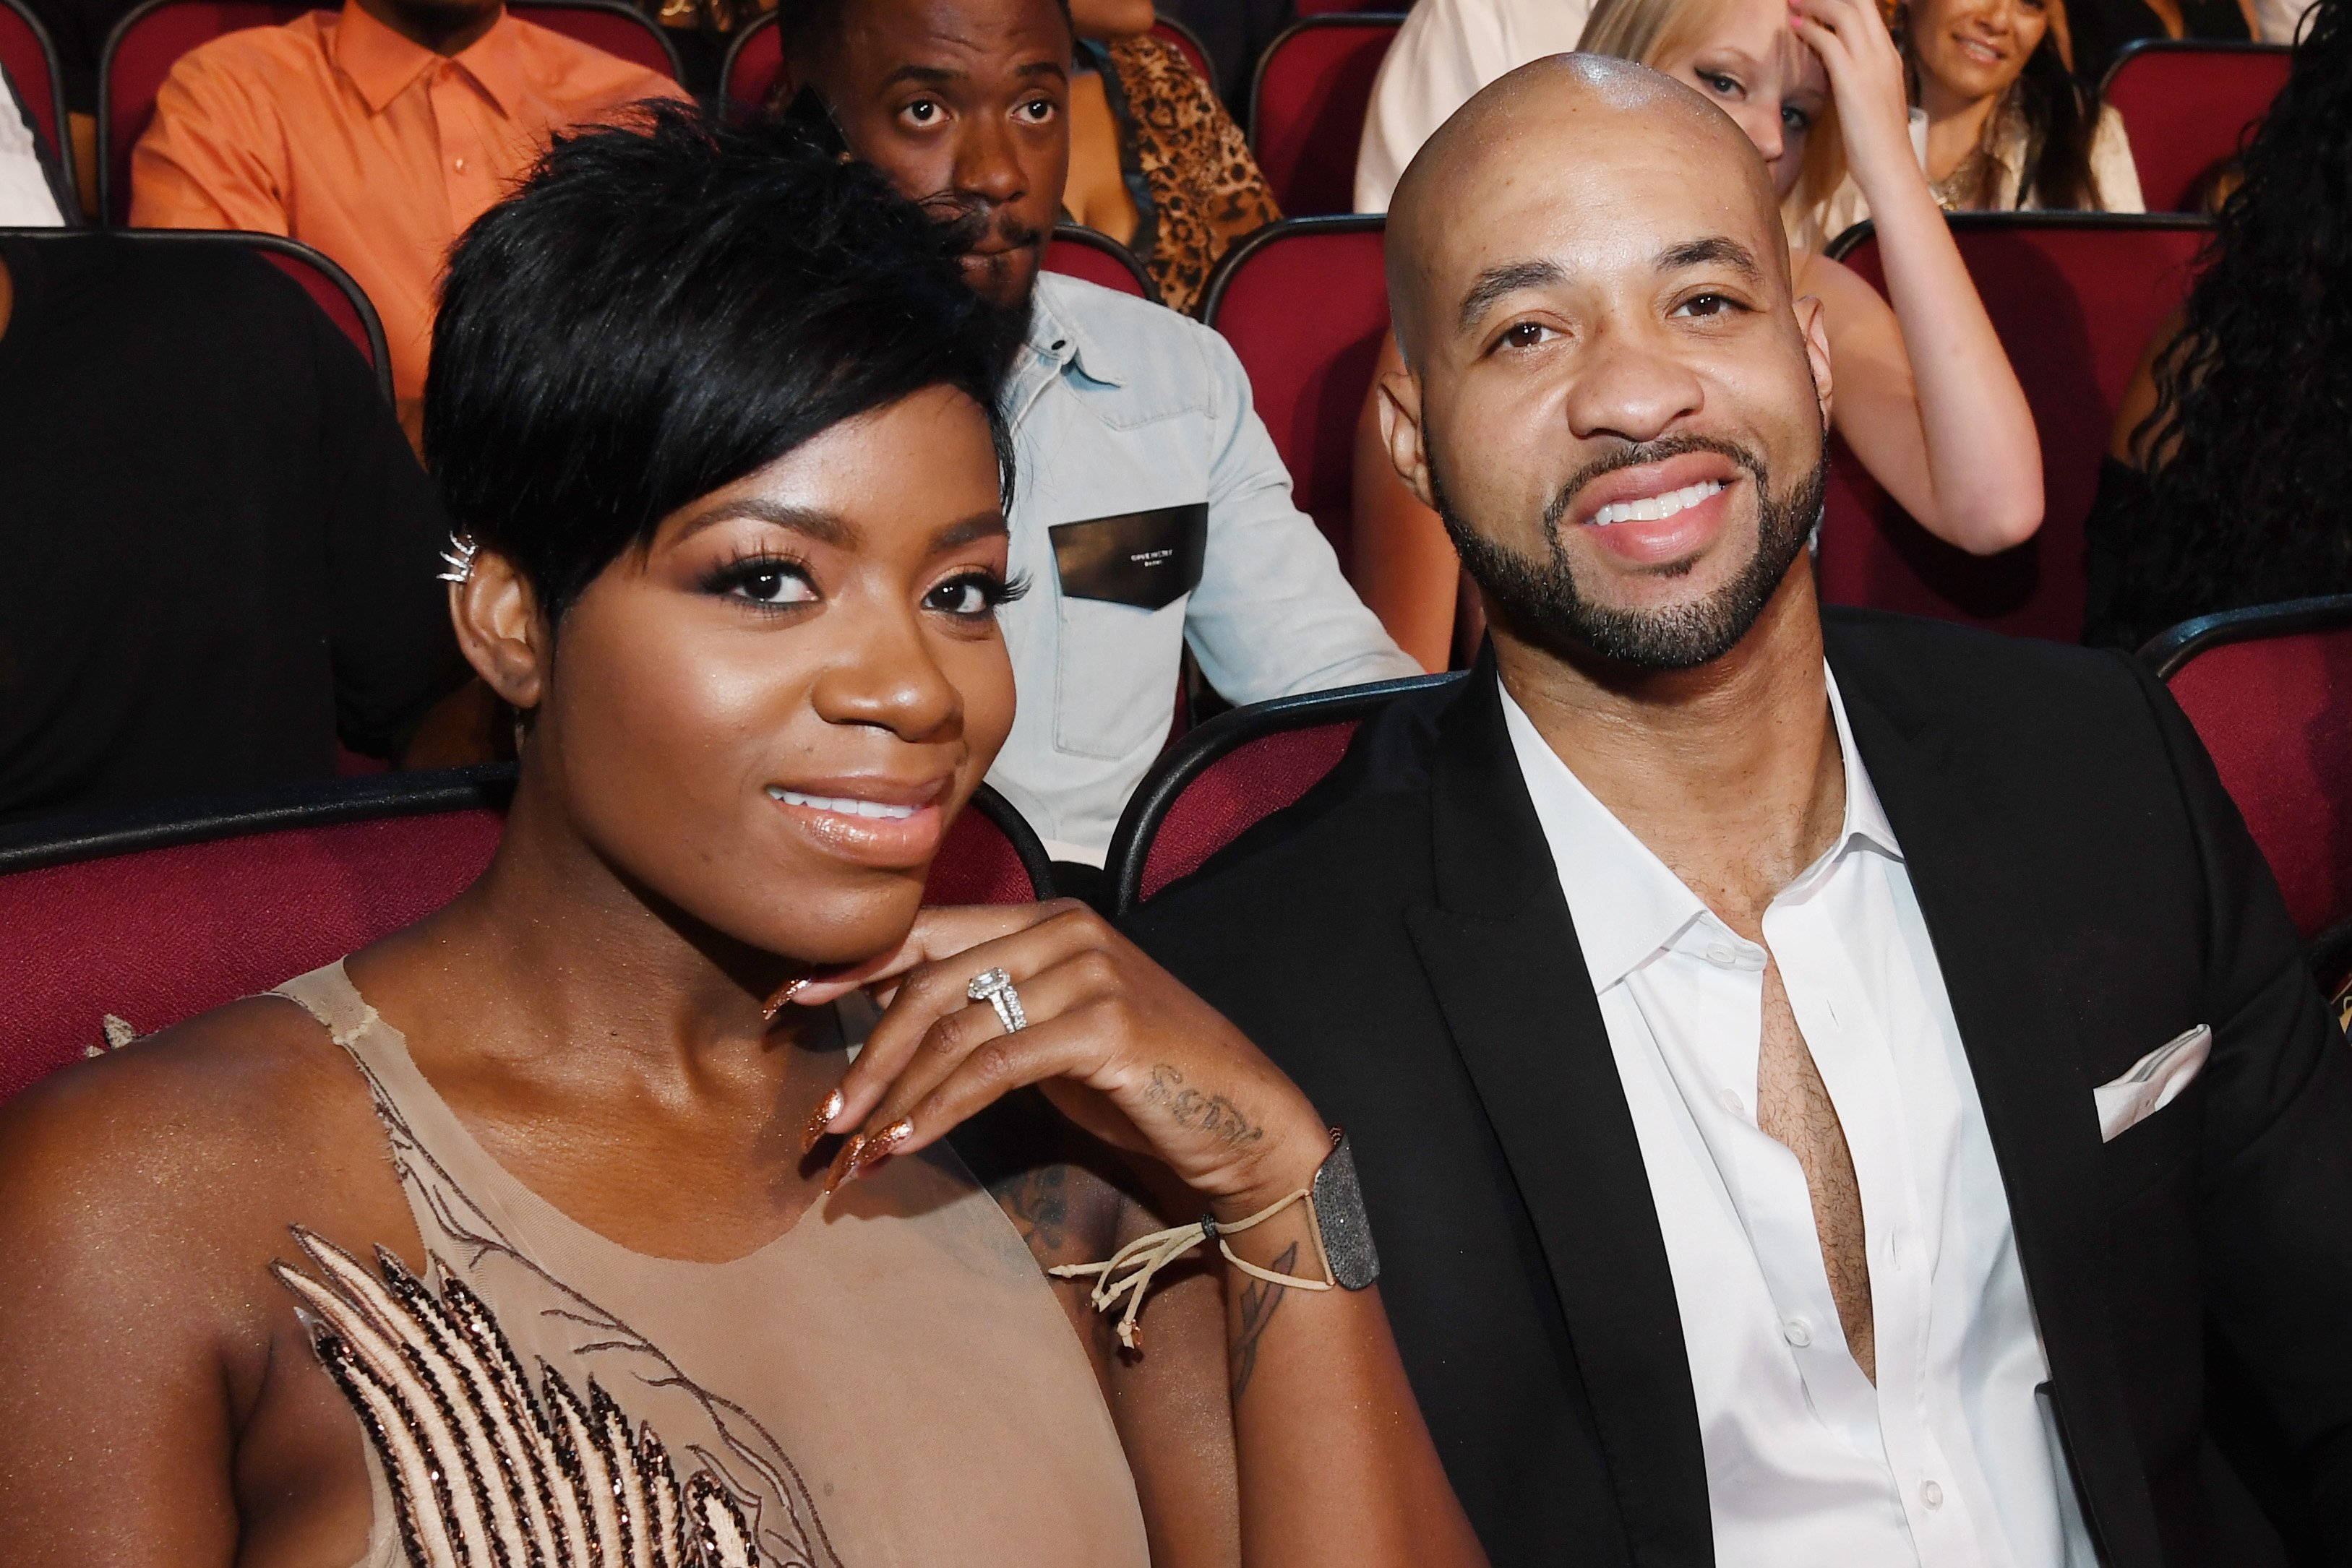 Fantasia Barrino-Taylor & her husband Kendall Taylor at the BET Awards on June 26, 2016 in California | Photo: Getty Images